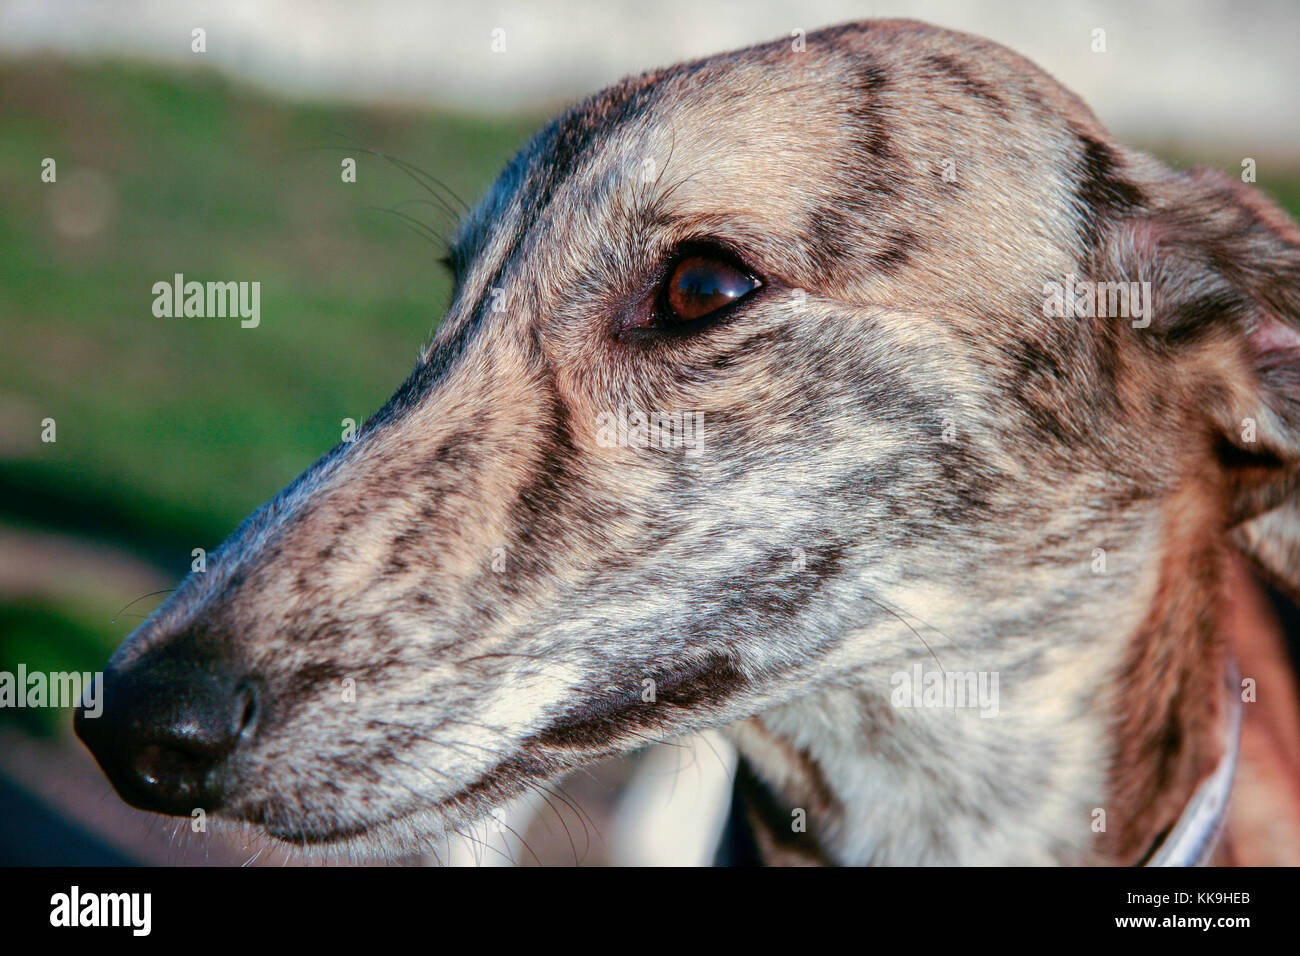 Beautiful young spanish greyhound also called in Spain Galgo. Portrait of striped dog - Stock Image